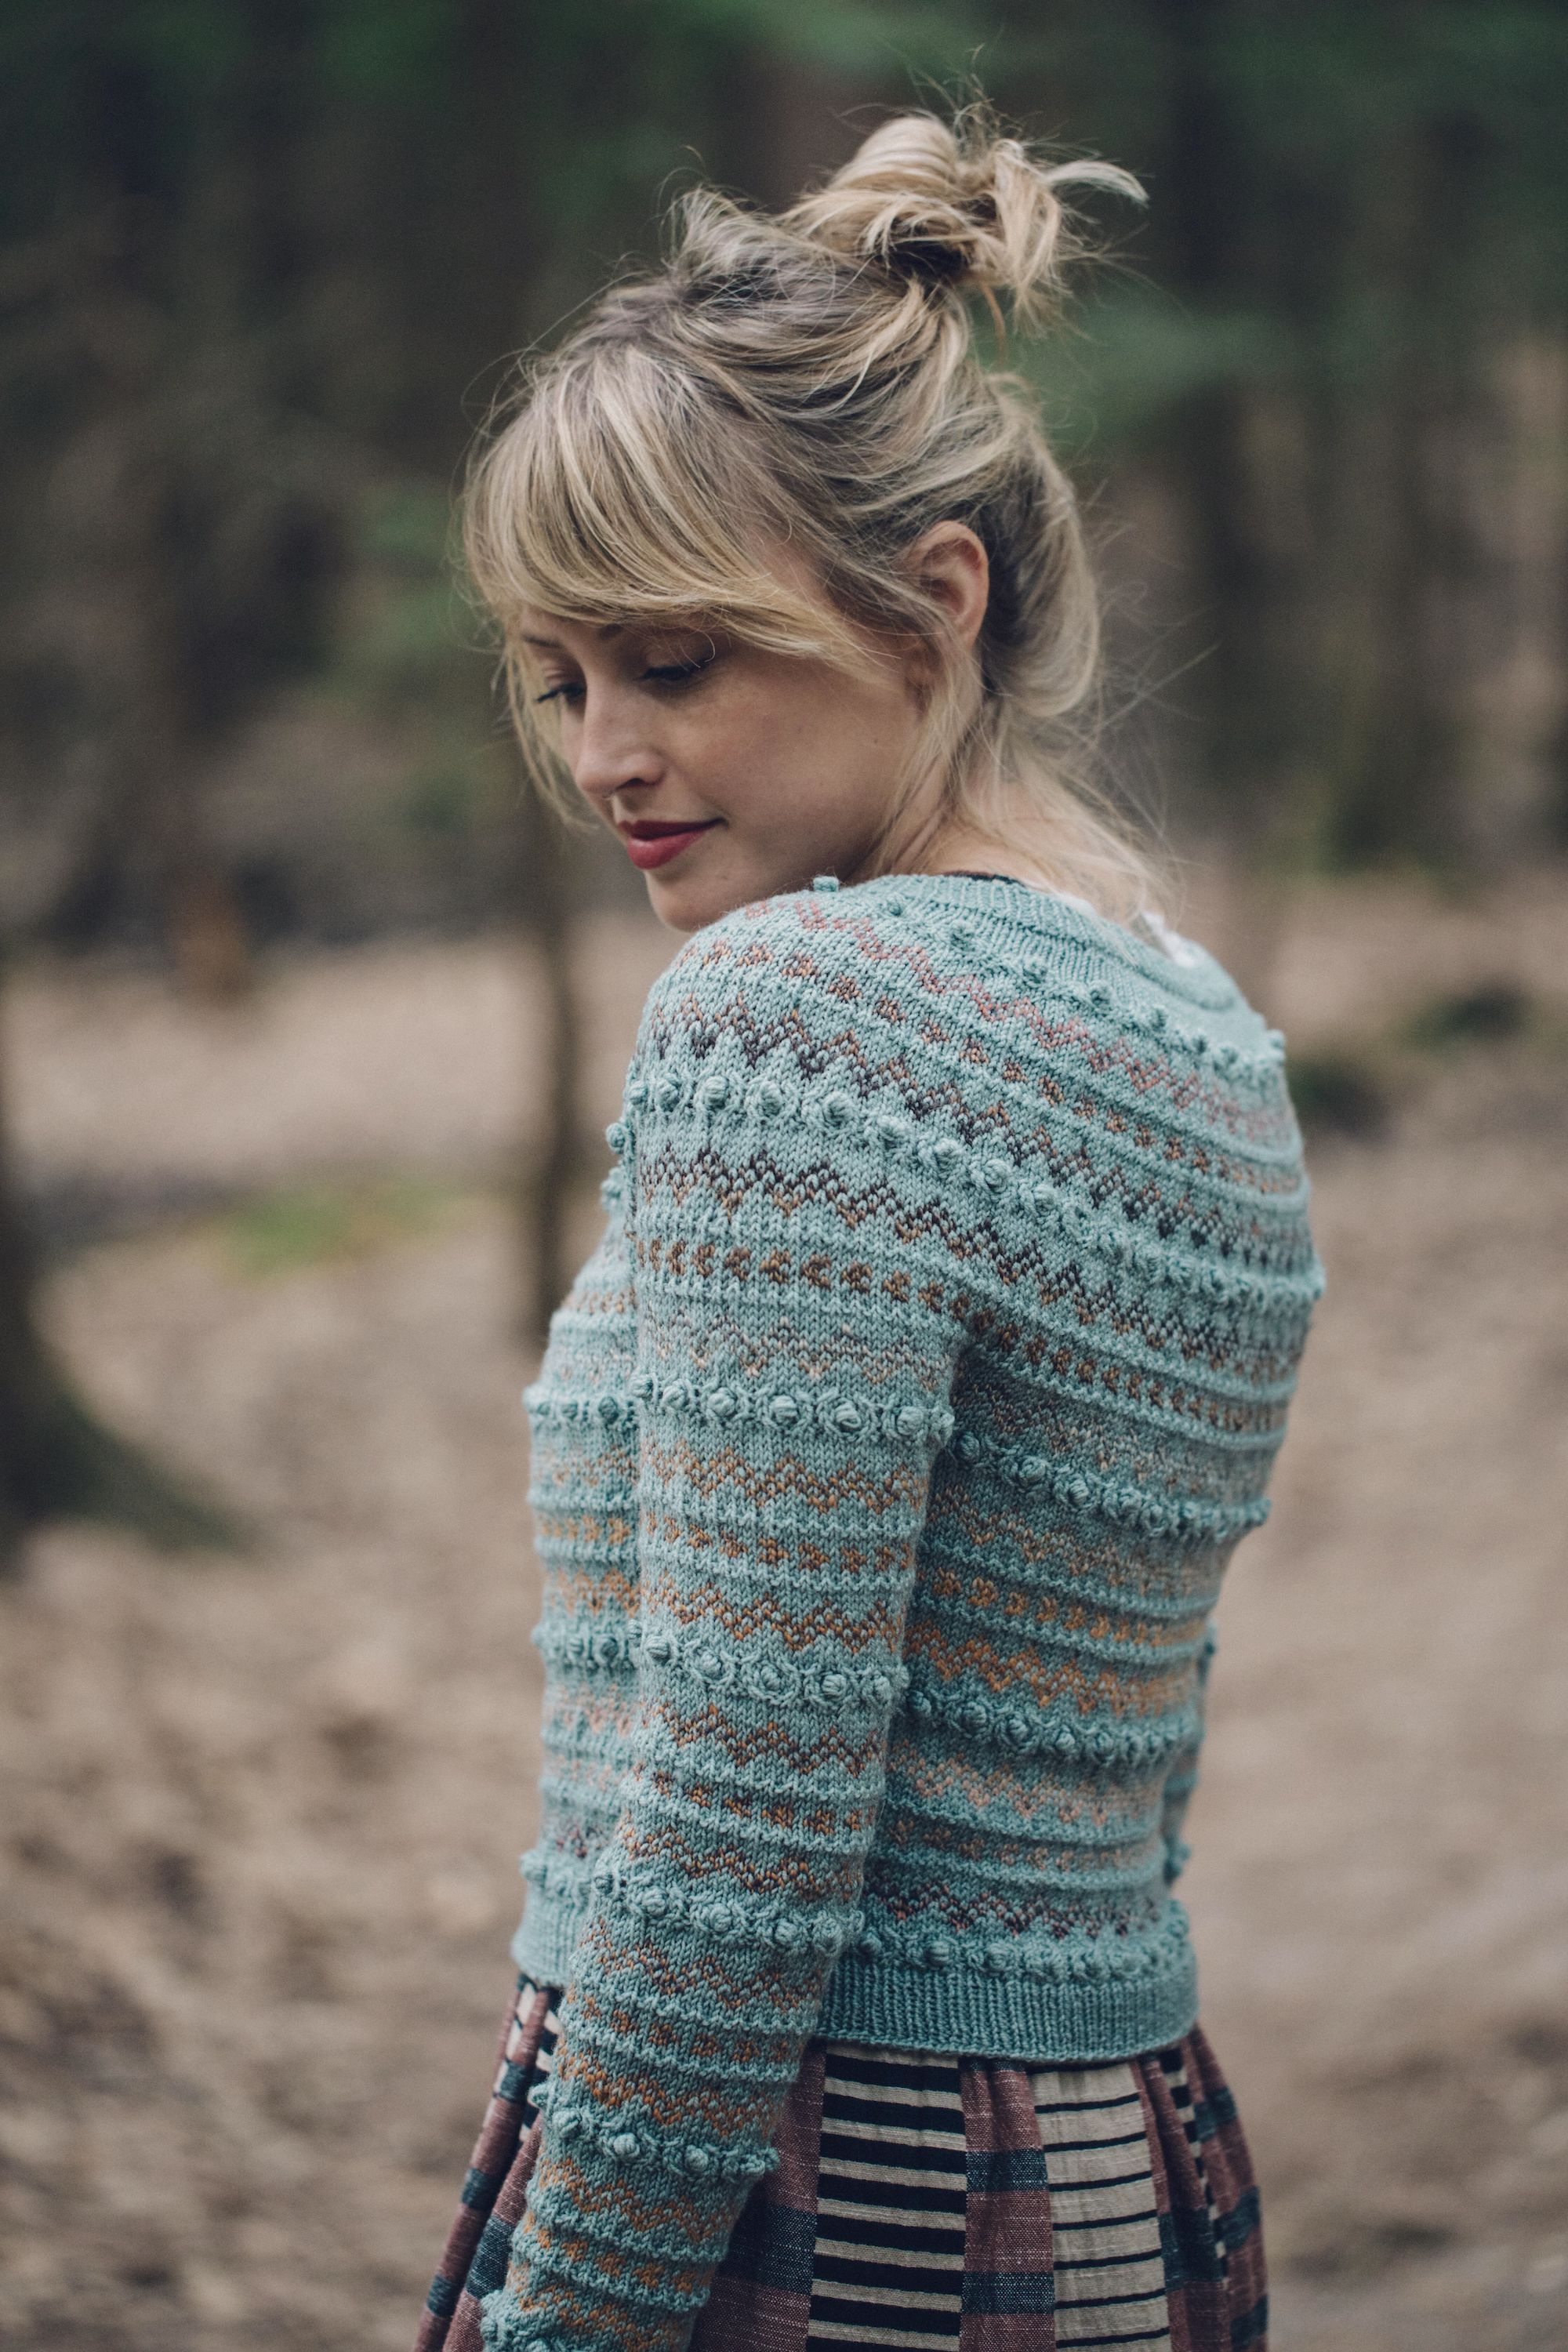 Cardigan: MC - Calypso (Magpie Fibers),  CC - Burning Sensation (Spincycle Yarns)